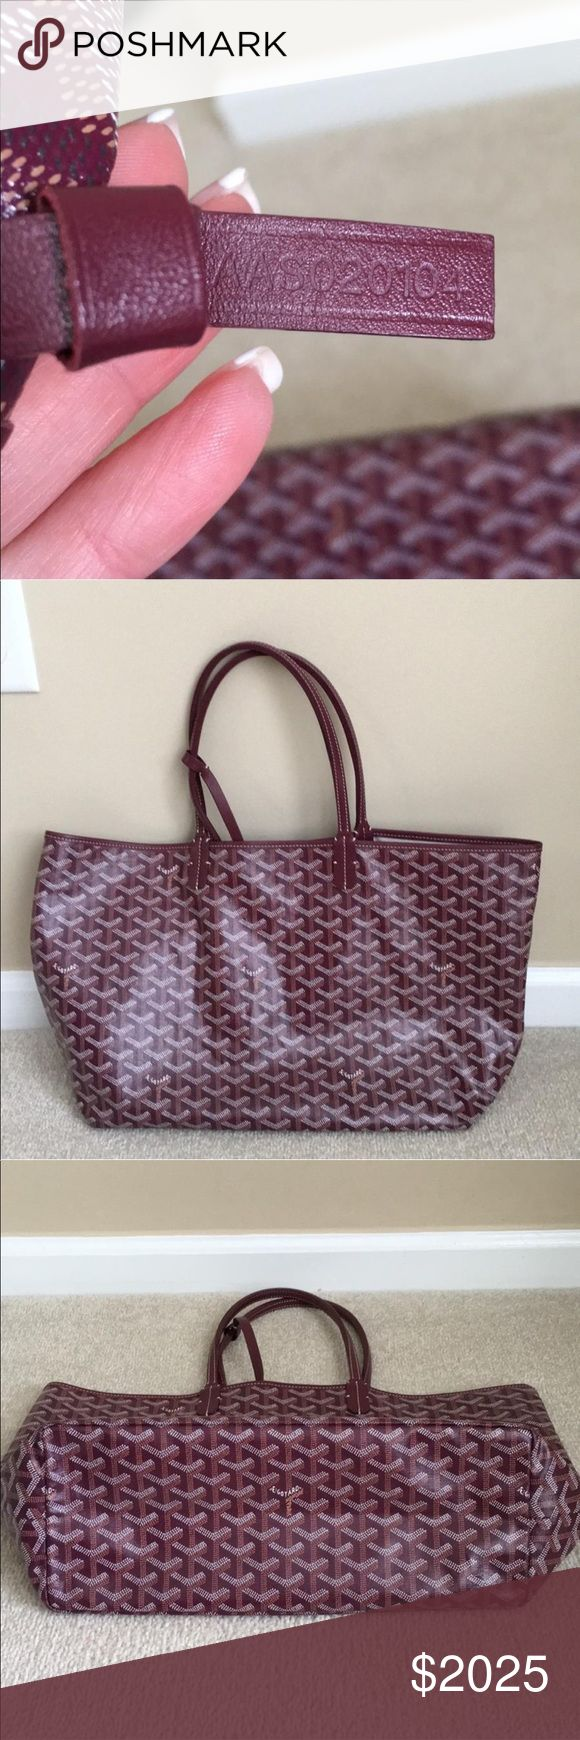 Authentic St Louis PM tote. Like new. 100% Authentic Burgundy Goyard St Louis Tote. With mini pouch.  Barely used - shows no signs of wear.  19 x 6 x 9  Purchased at Barneys NY Goyard Bags Totes